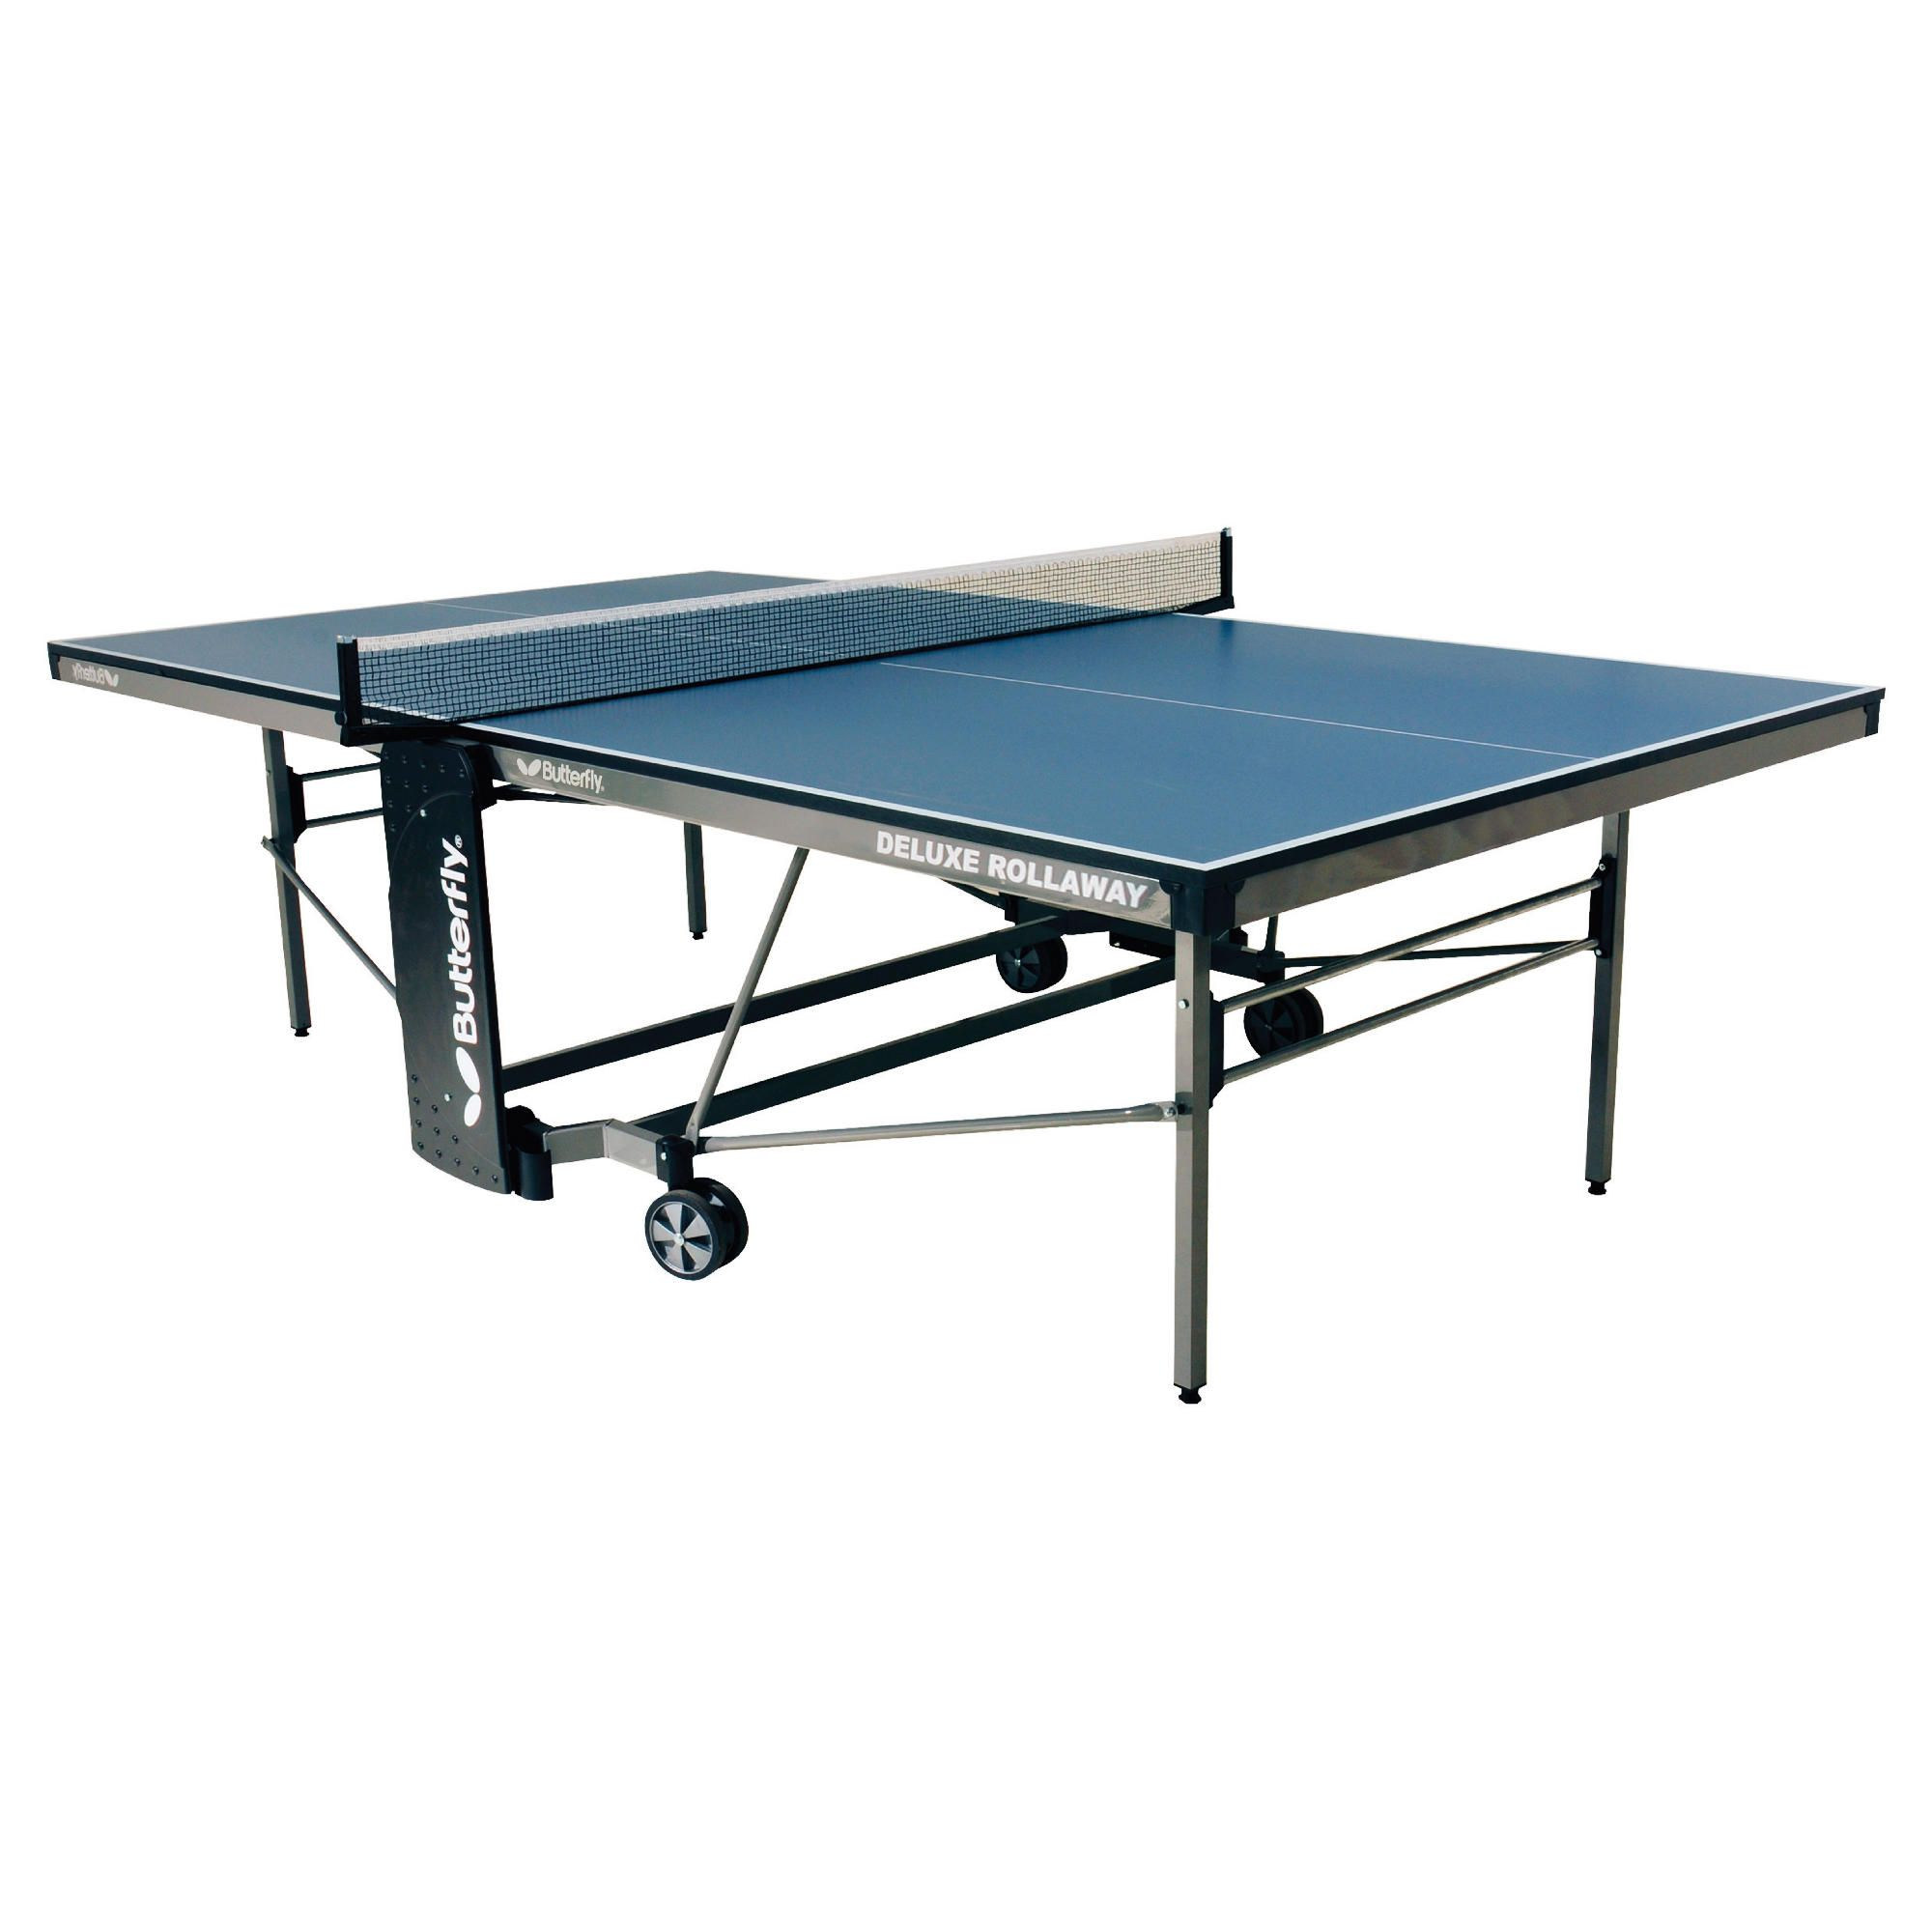 Butterfly Deluxe Rollaway Table Tennis Table - Blue at Tesco Direct